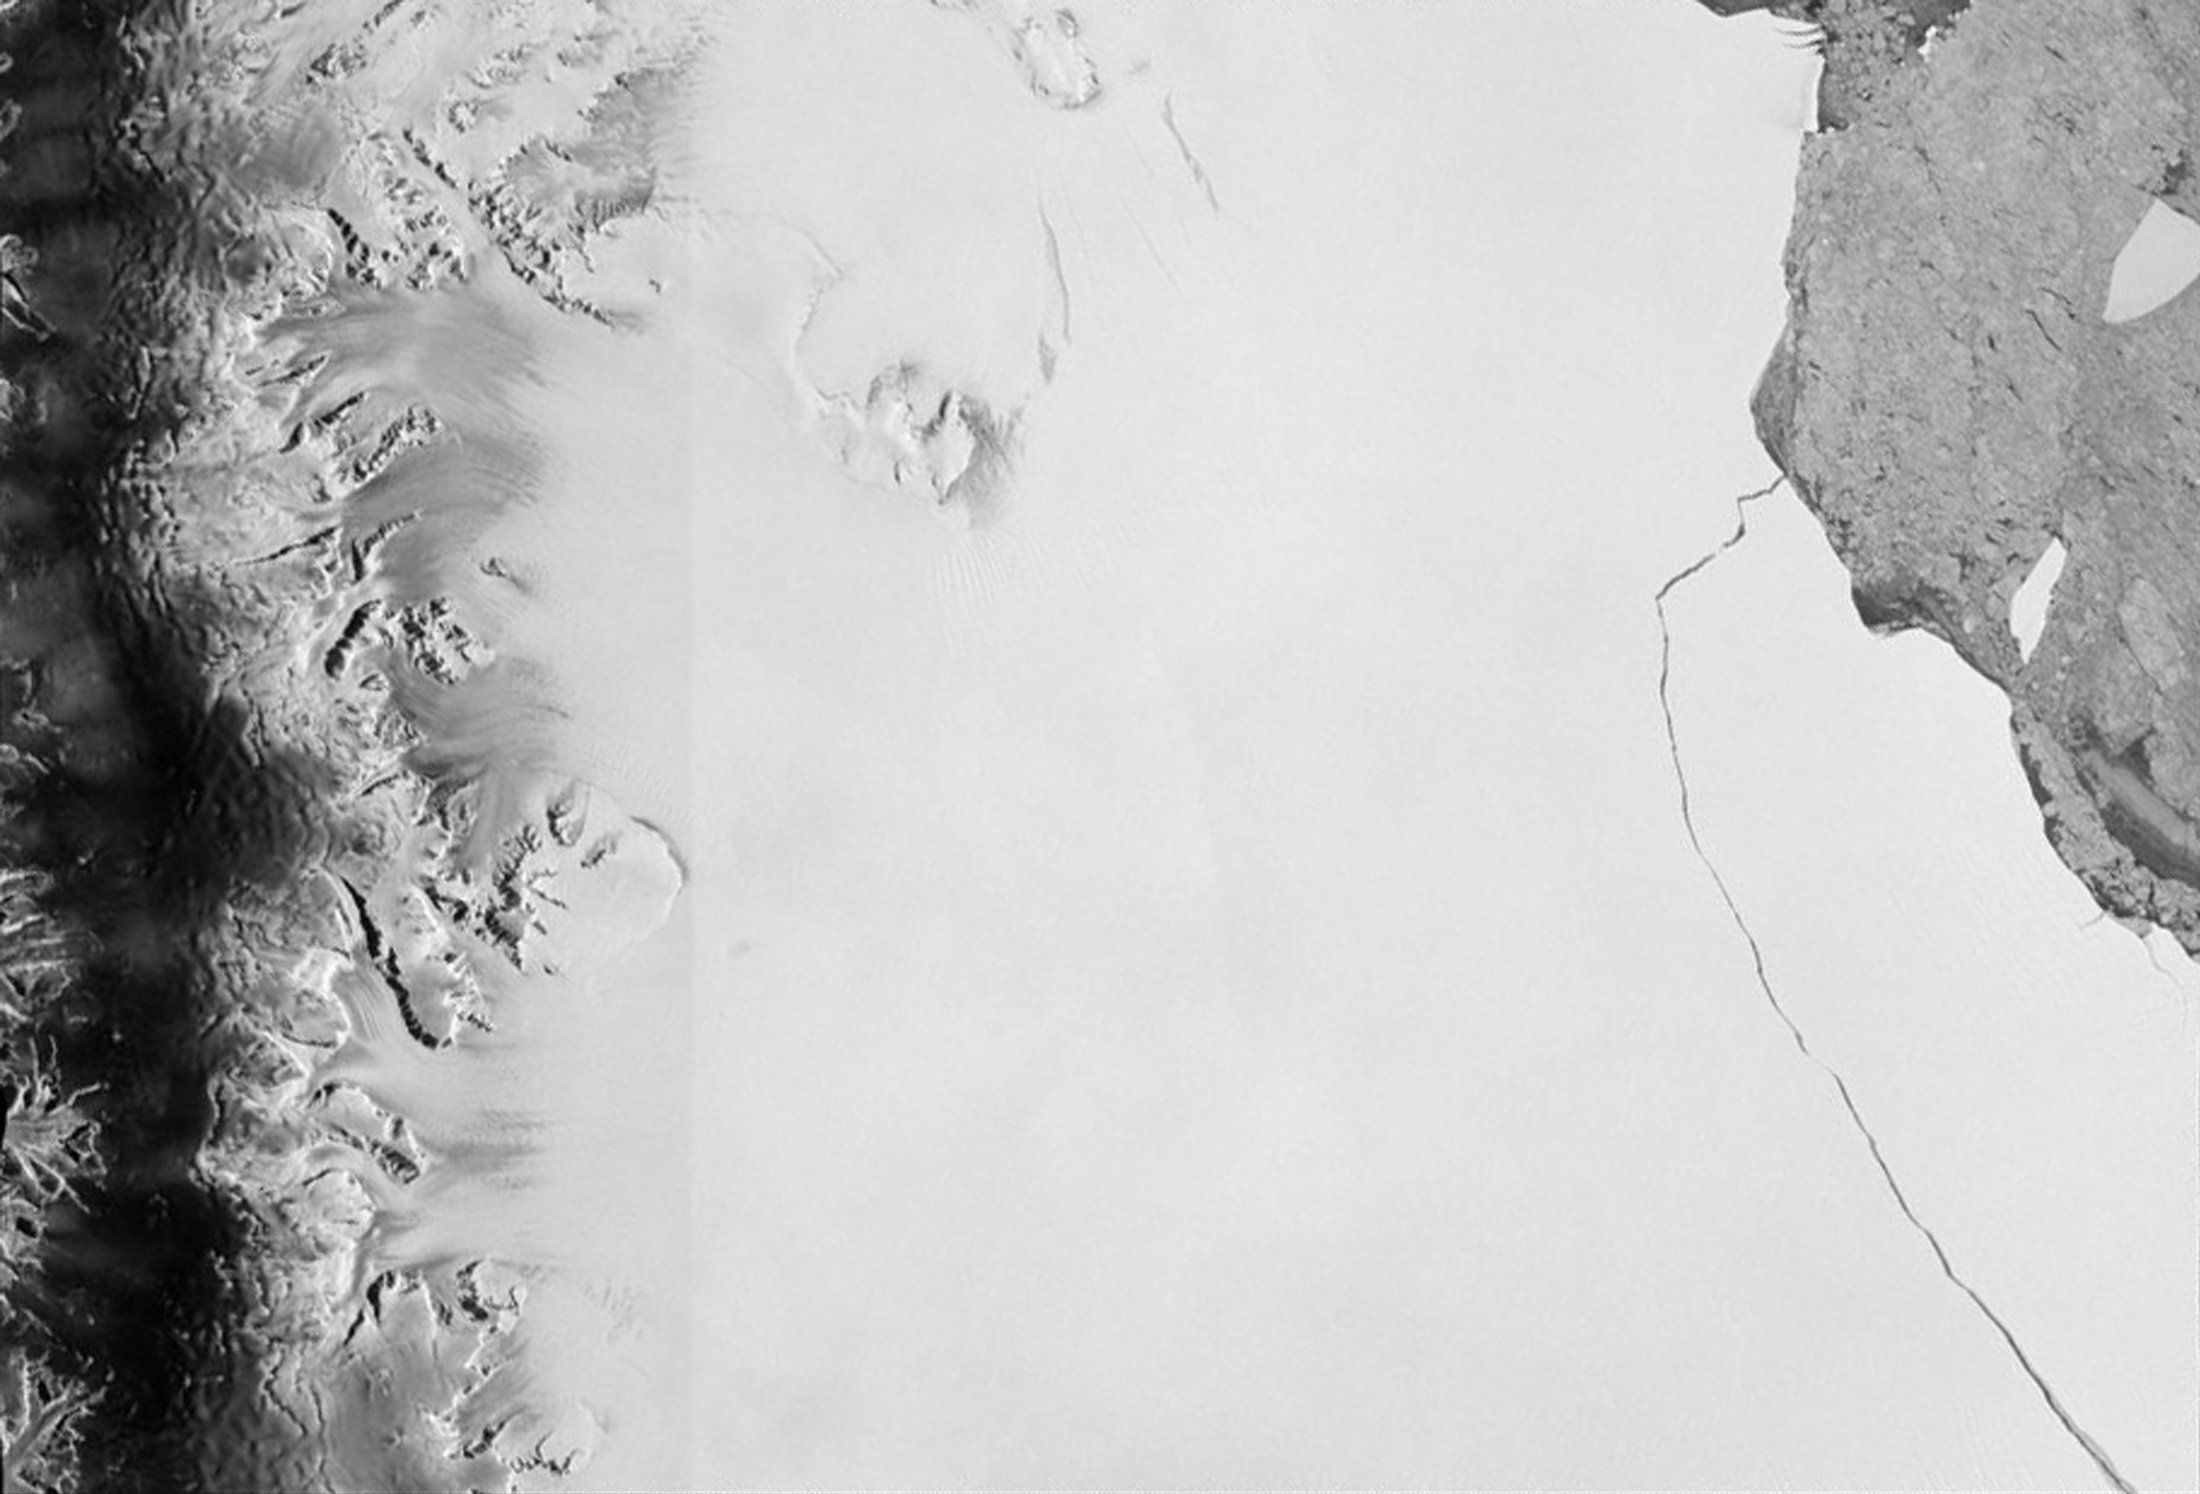 Scientists capture iceberg breaking away from a glacier in Greenland